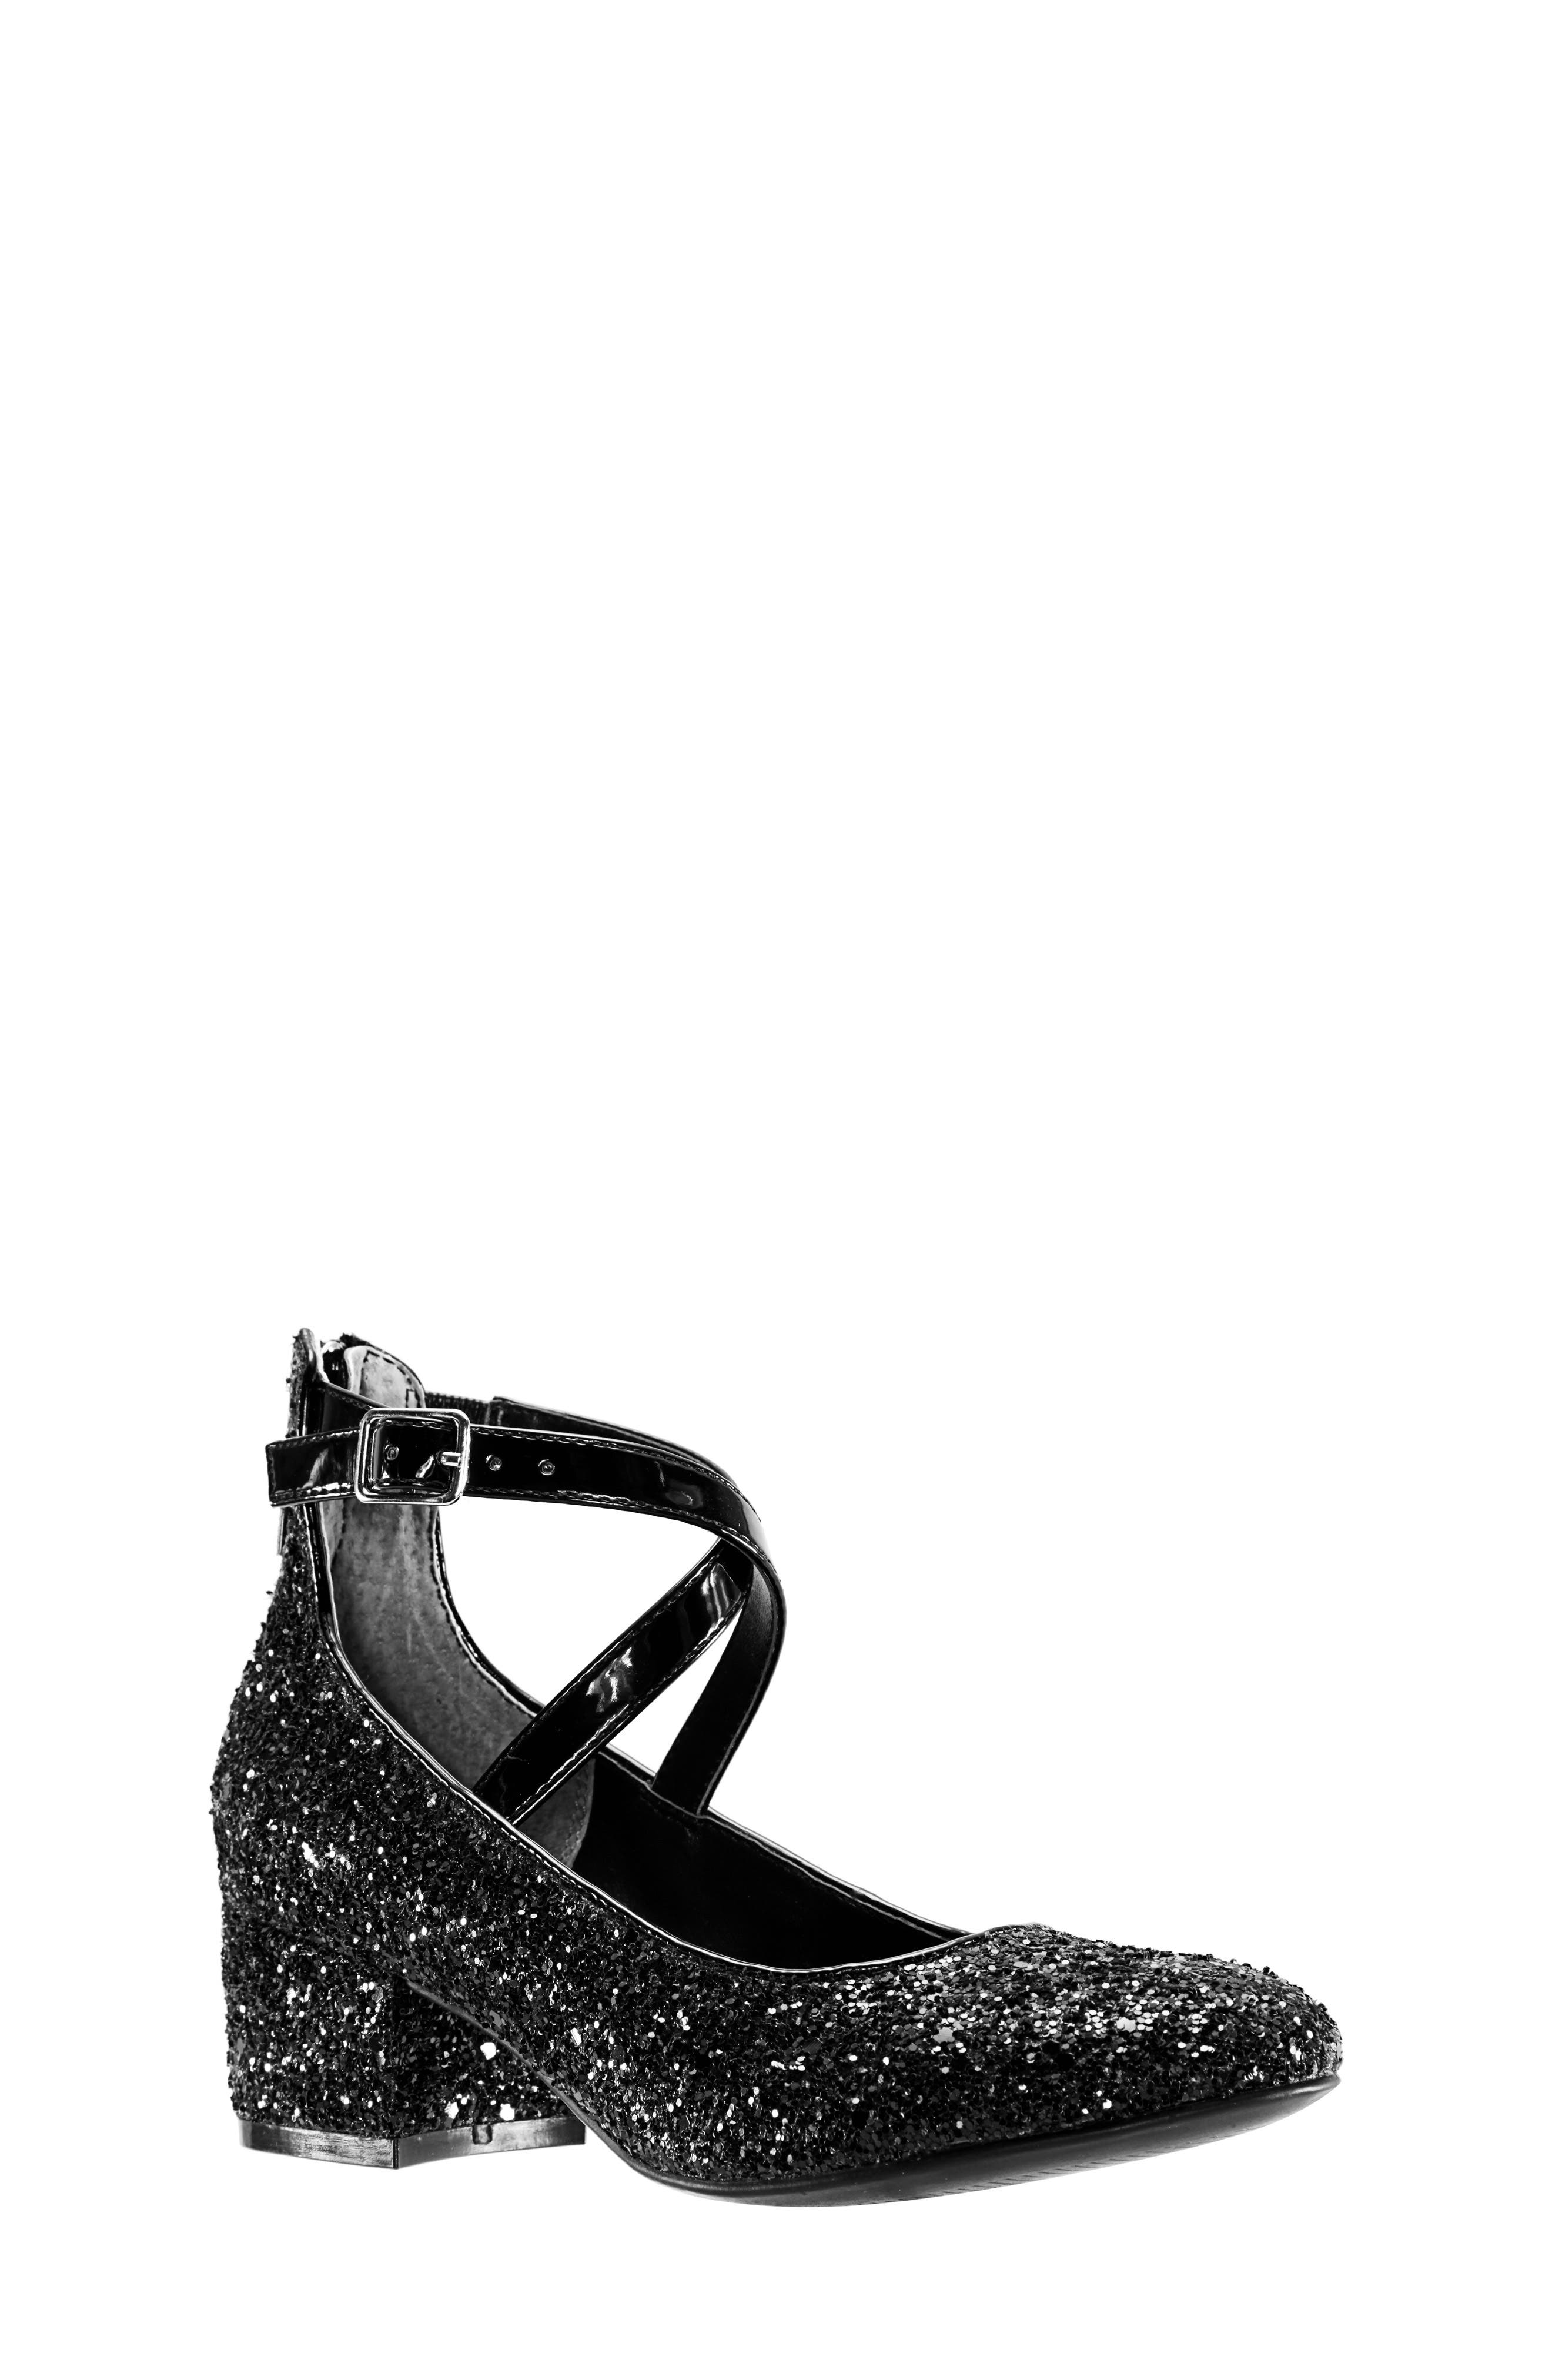 Deisy Glitter Block Heel Pump,                             Main thumbnail 1, color,                             BLACK CHUNK GLITTER/ PATENT